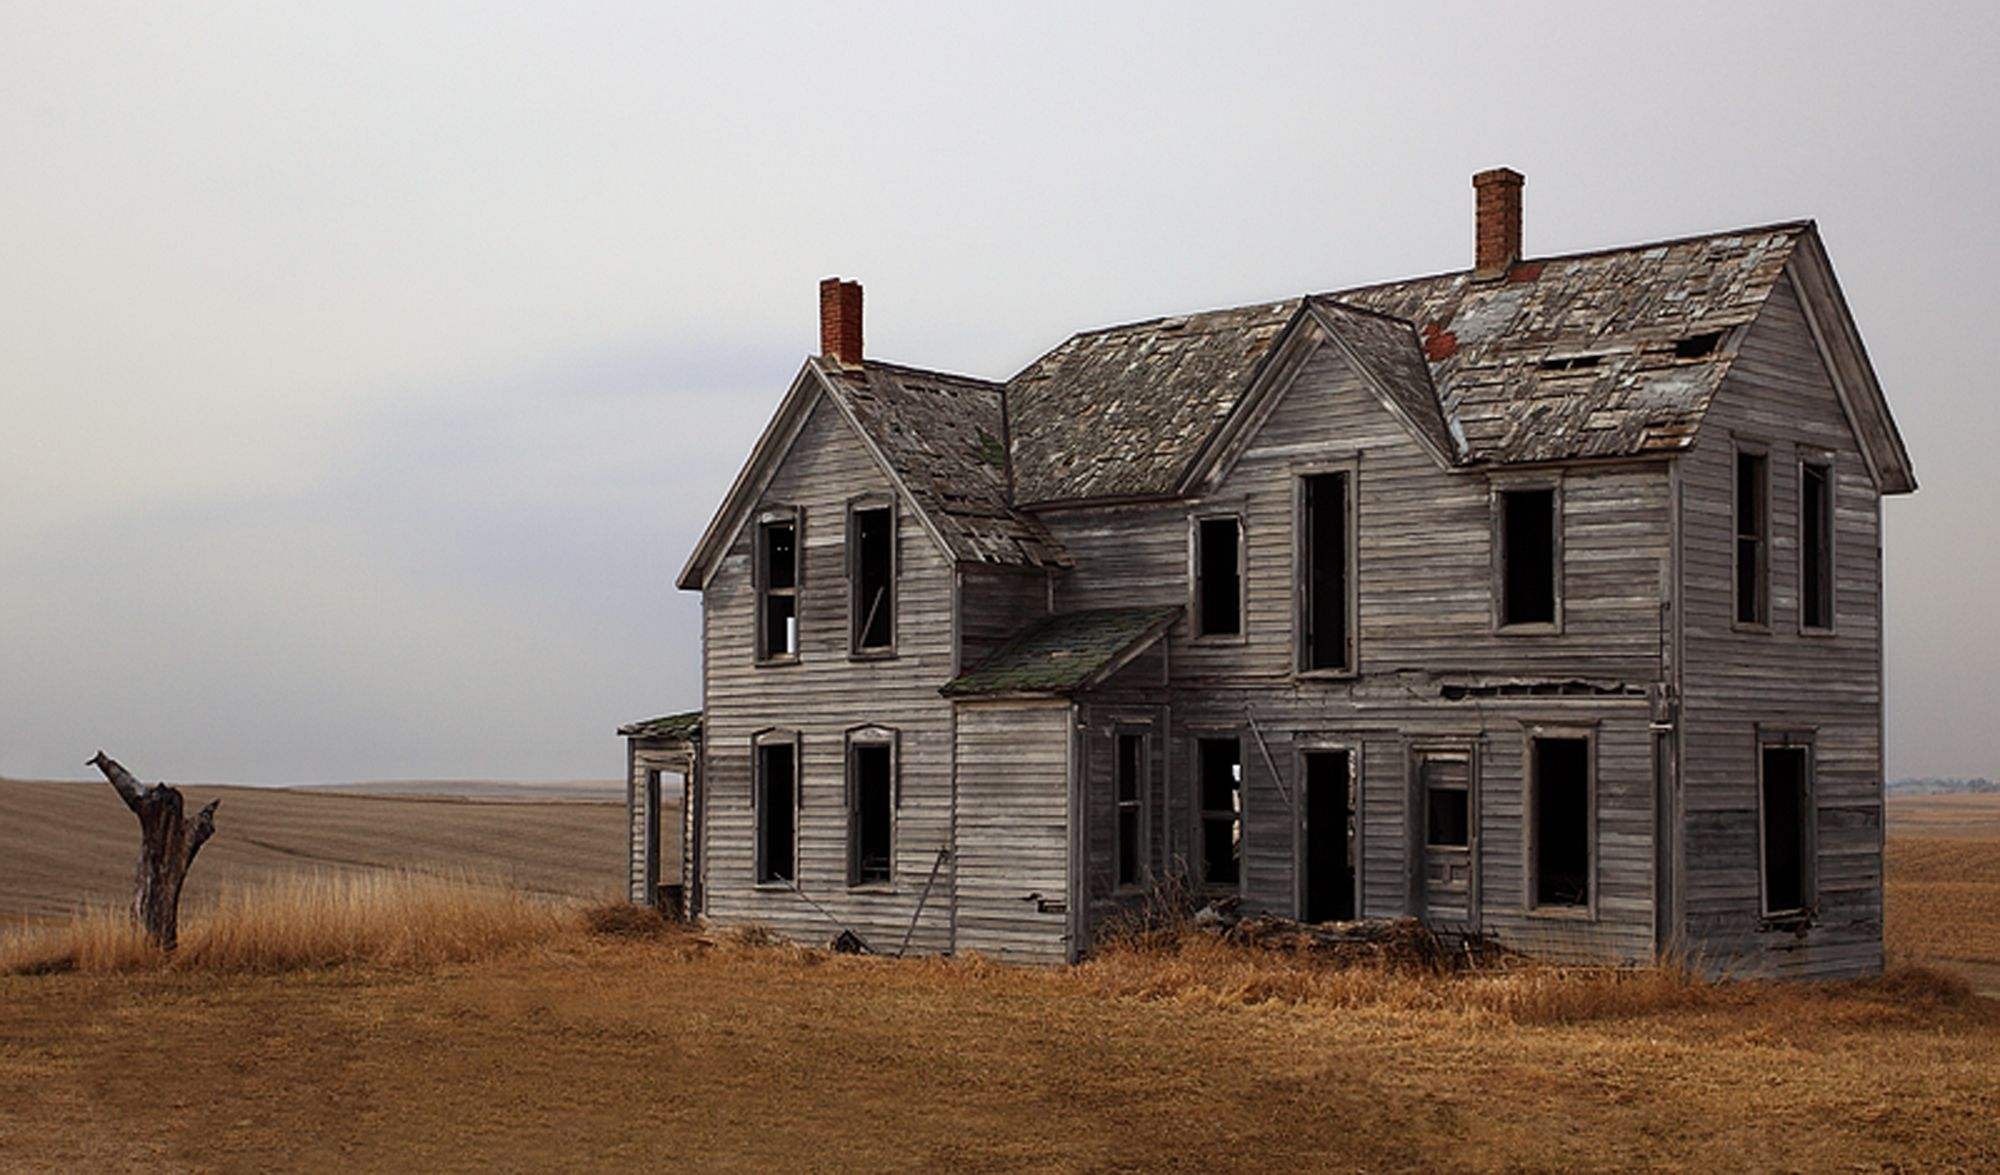 Lovely old abandoned farm house in Iowa | Houses ♥ | Pinterest